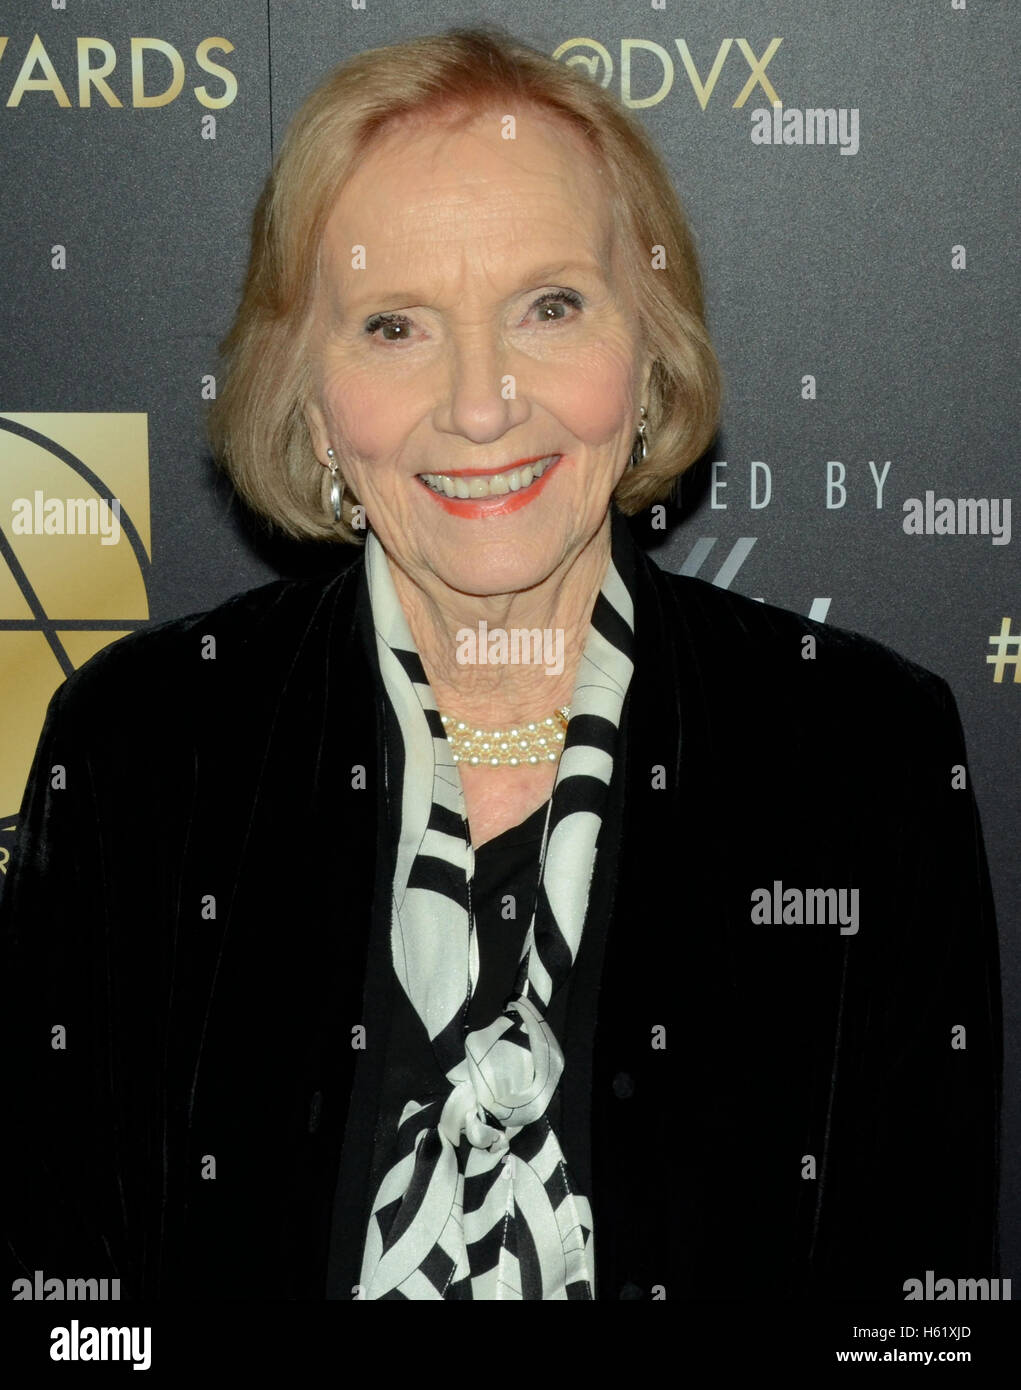 00a4f1417a521 Eva Marie Saint attends the Art Directors Guild 20th Annual Excellence In  Production Awards at the Beverly Hilton Hotel in Beverly Hills on January  31, 2016